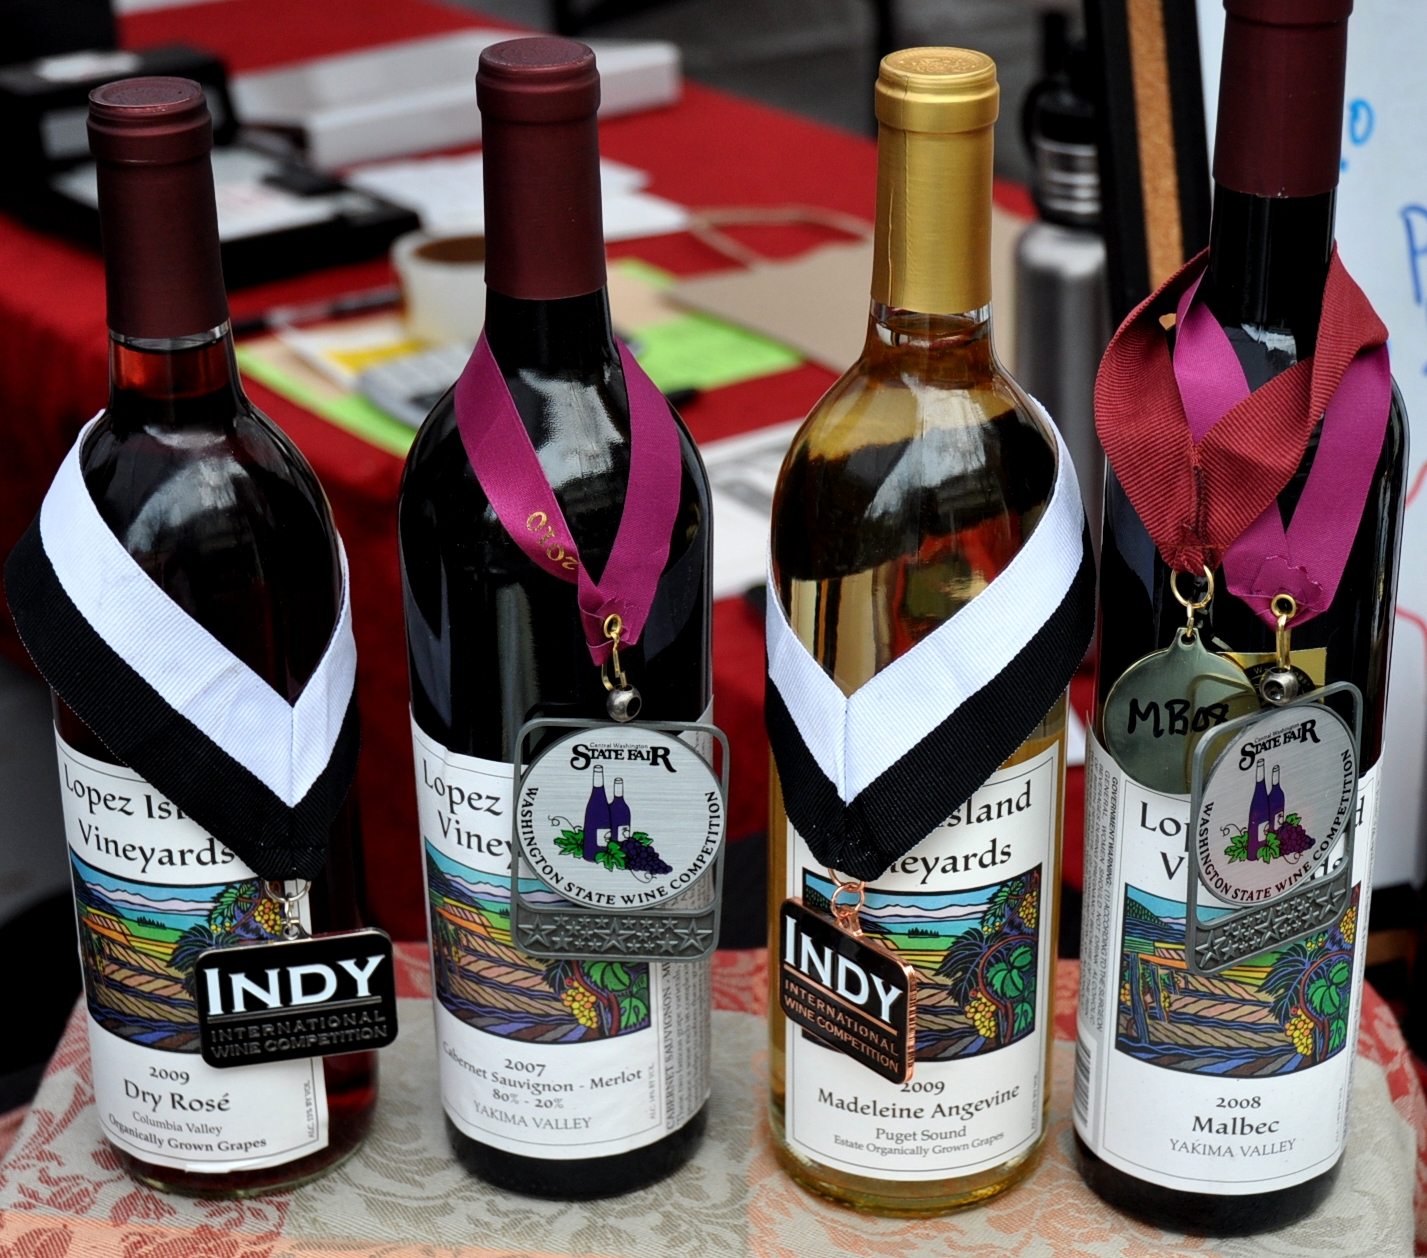 Award winning wines from Lopez Island Vineyards. Photo copyright 2010 by Zachary D. Lyons.